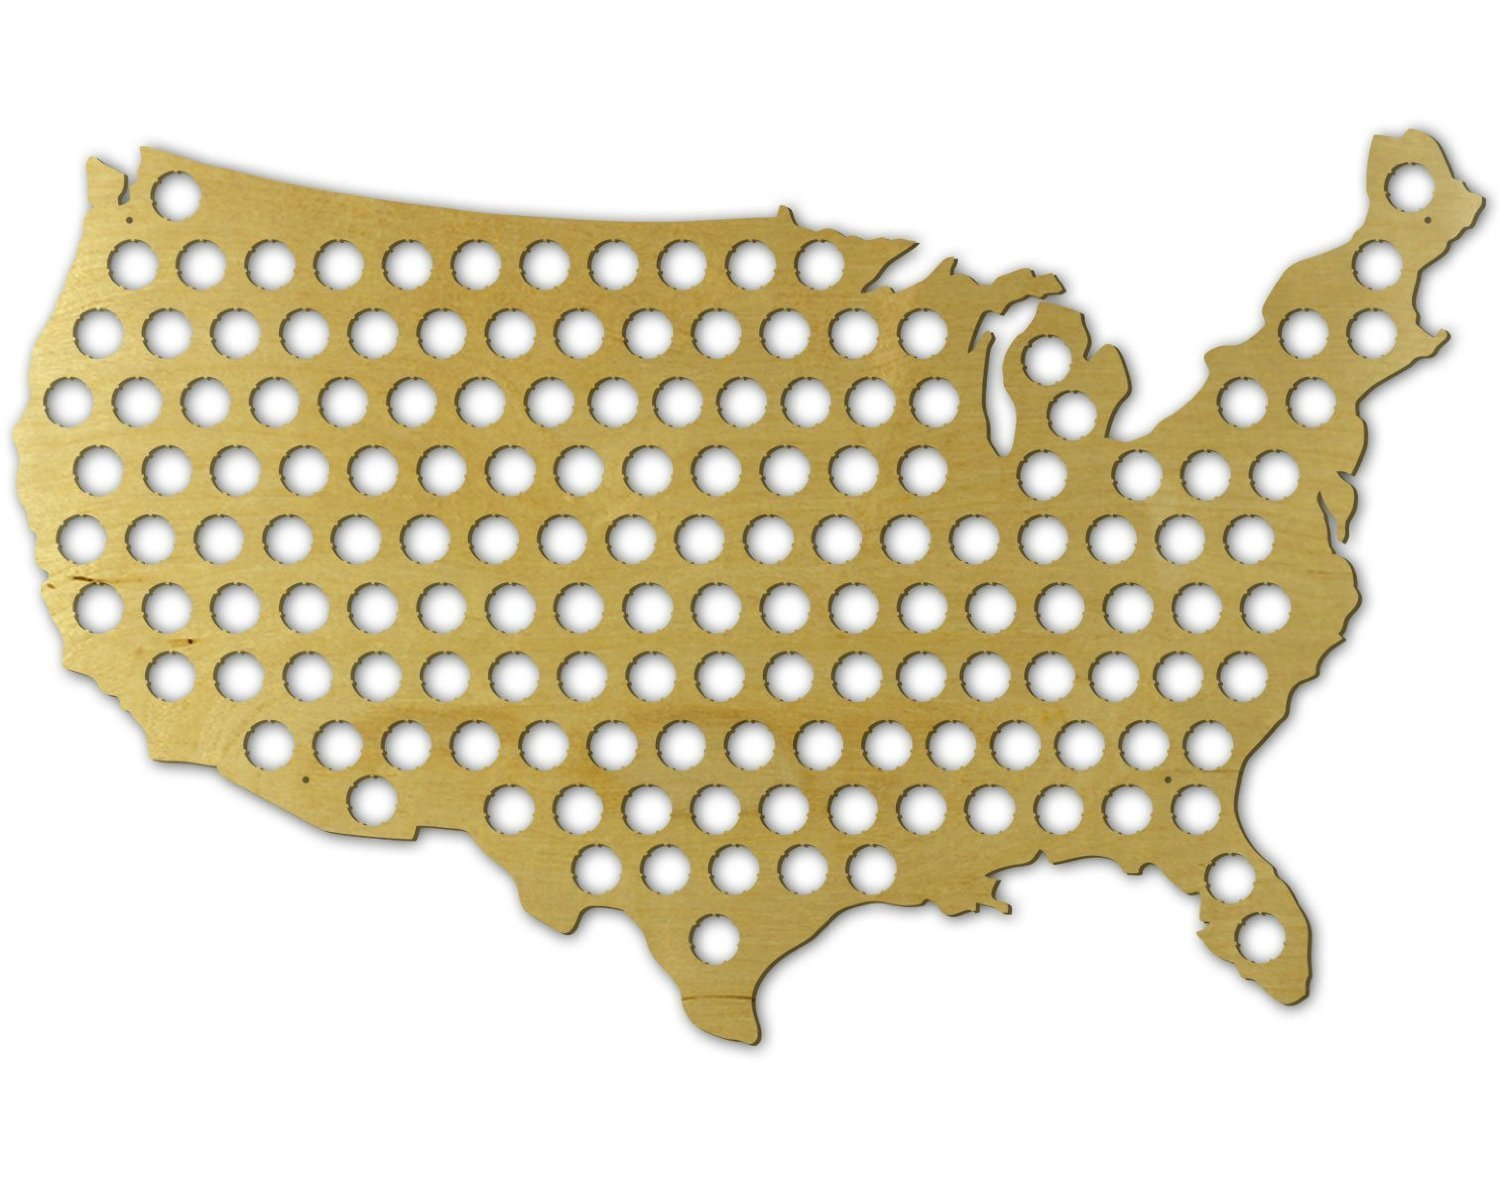 Amazoncom Beer Cap Trap - Us beer map wall art